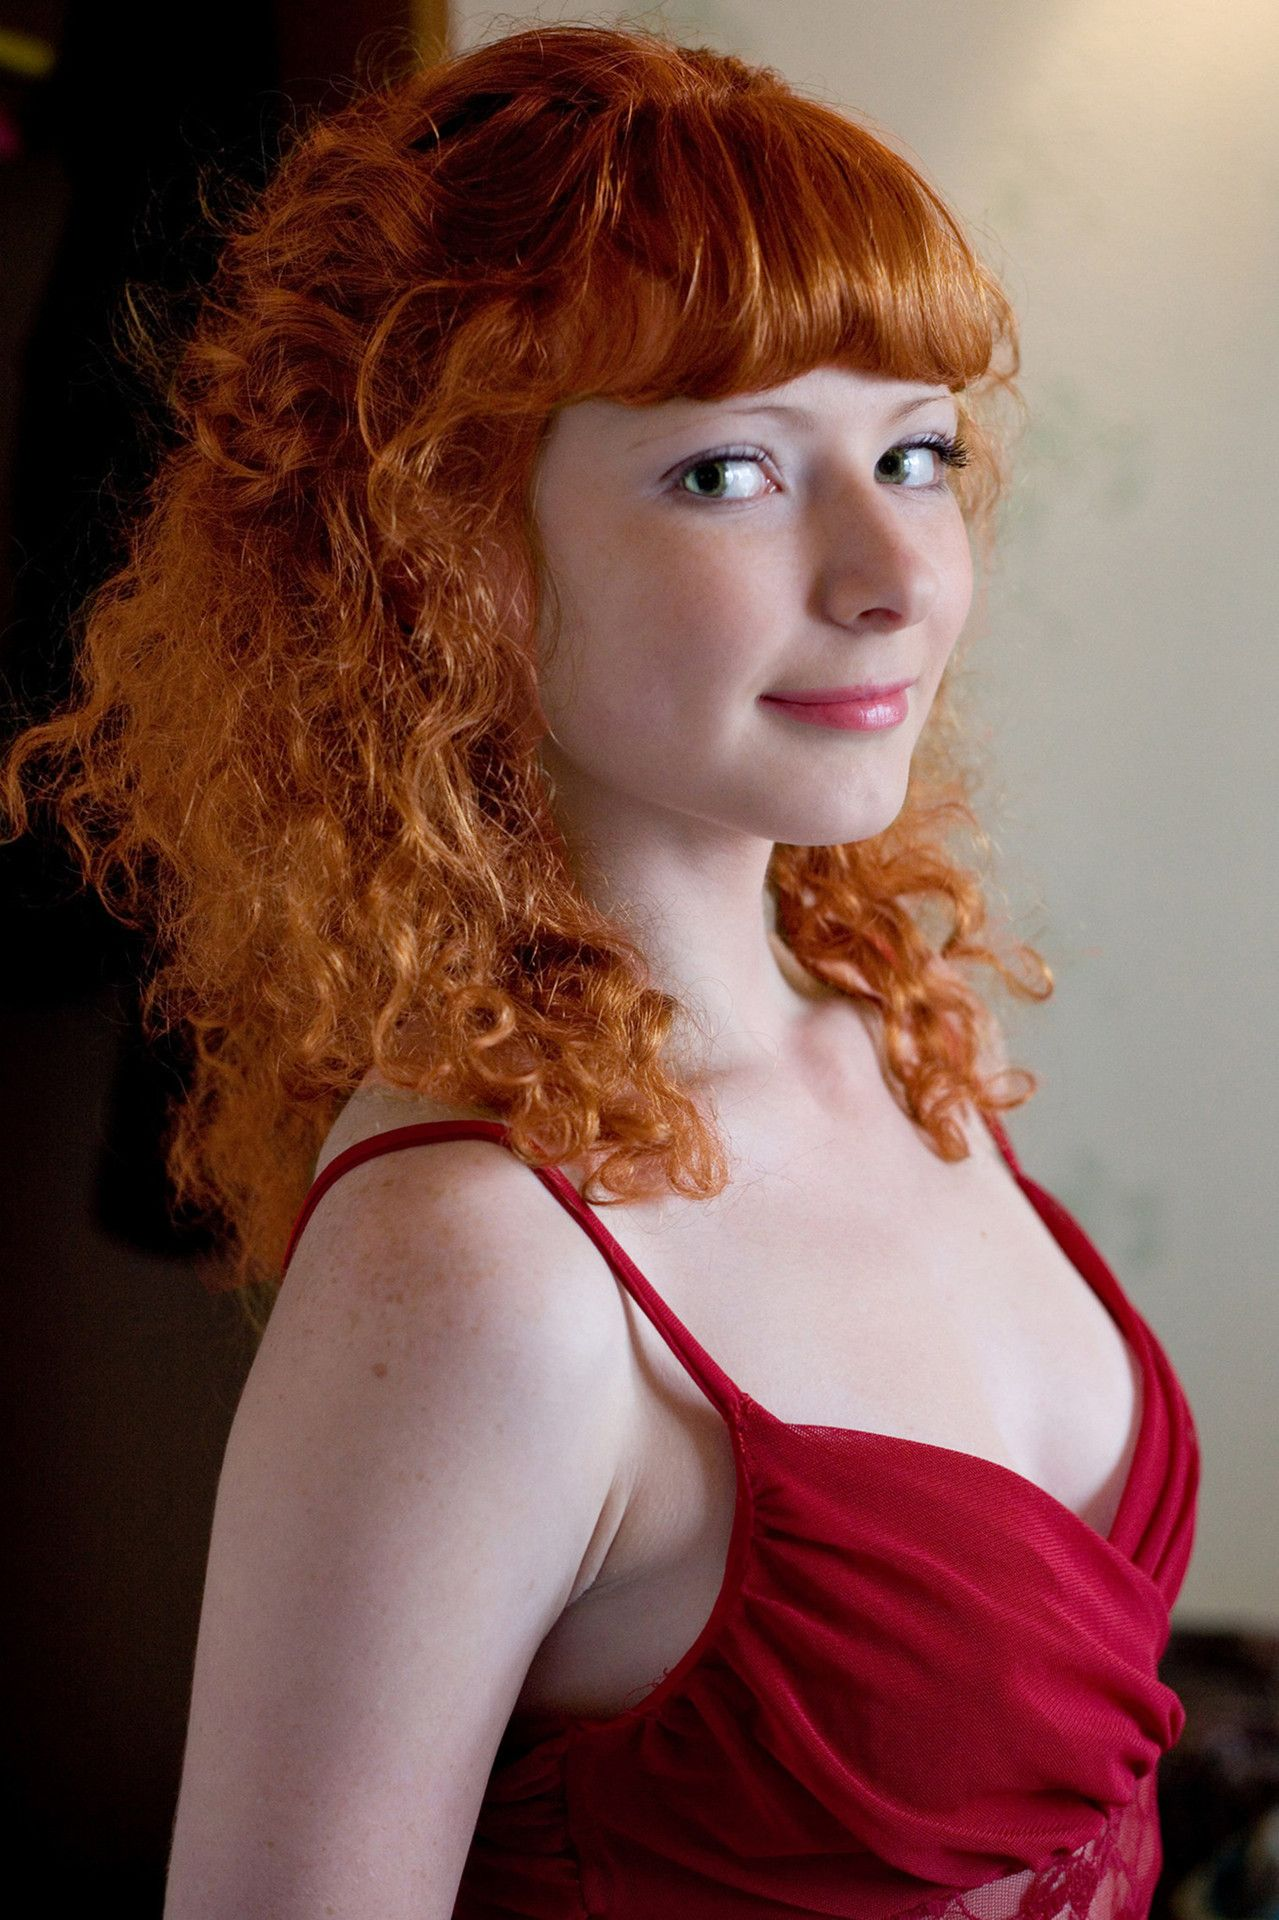 curly redhead looking at you | Redheads, Red hair